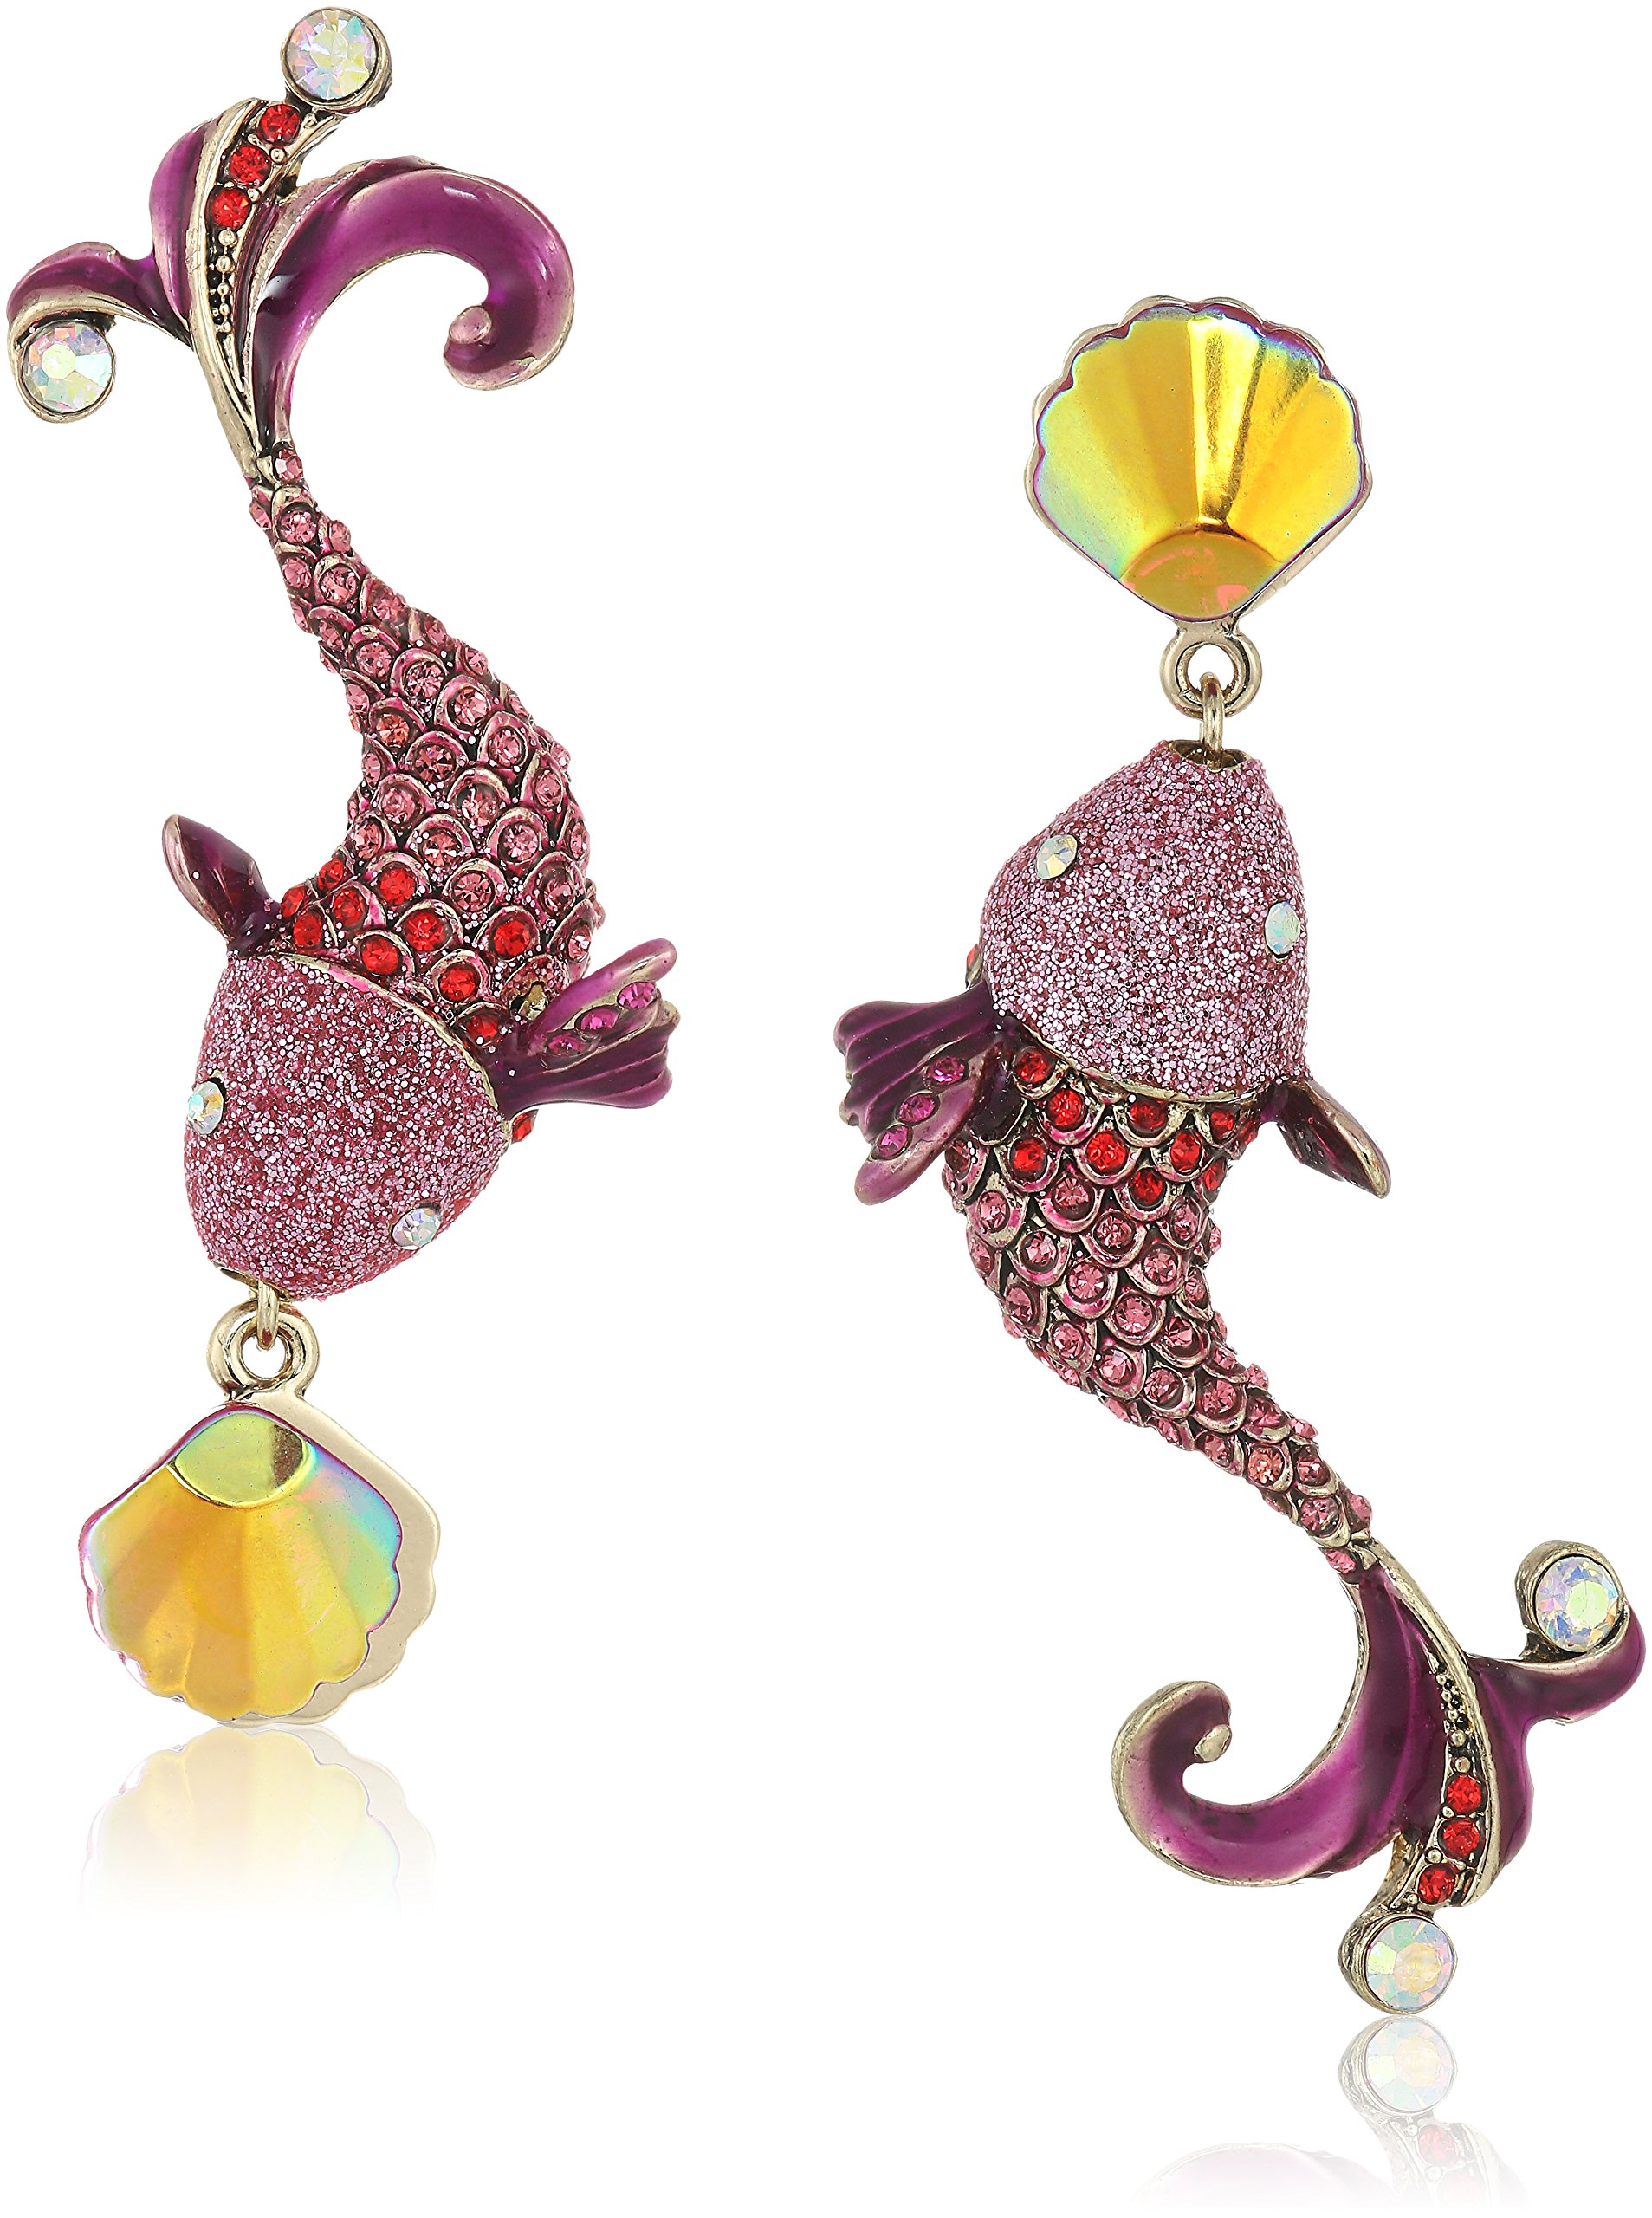 Betsey Johnson Women's Crabby Couture Colorful Fish Mismatch Drop Earrings, Pink, One Size